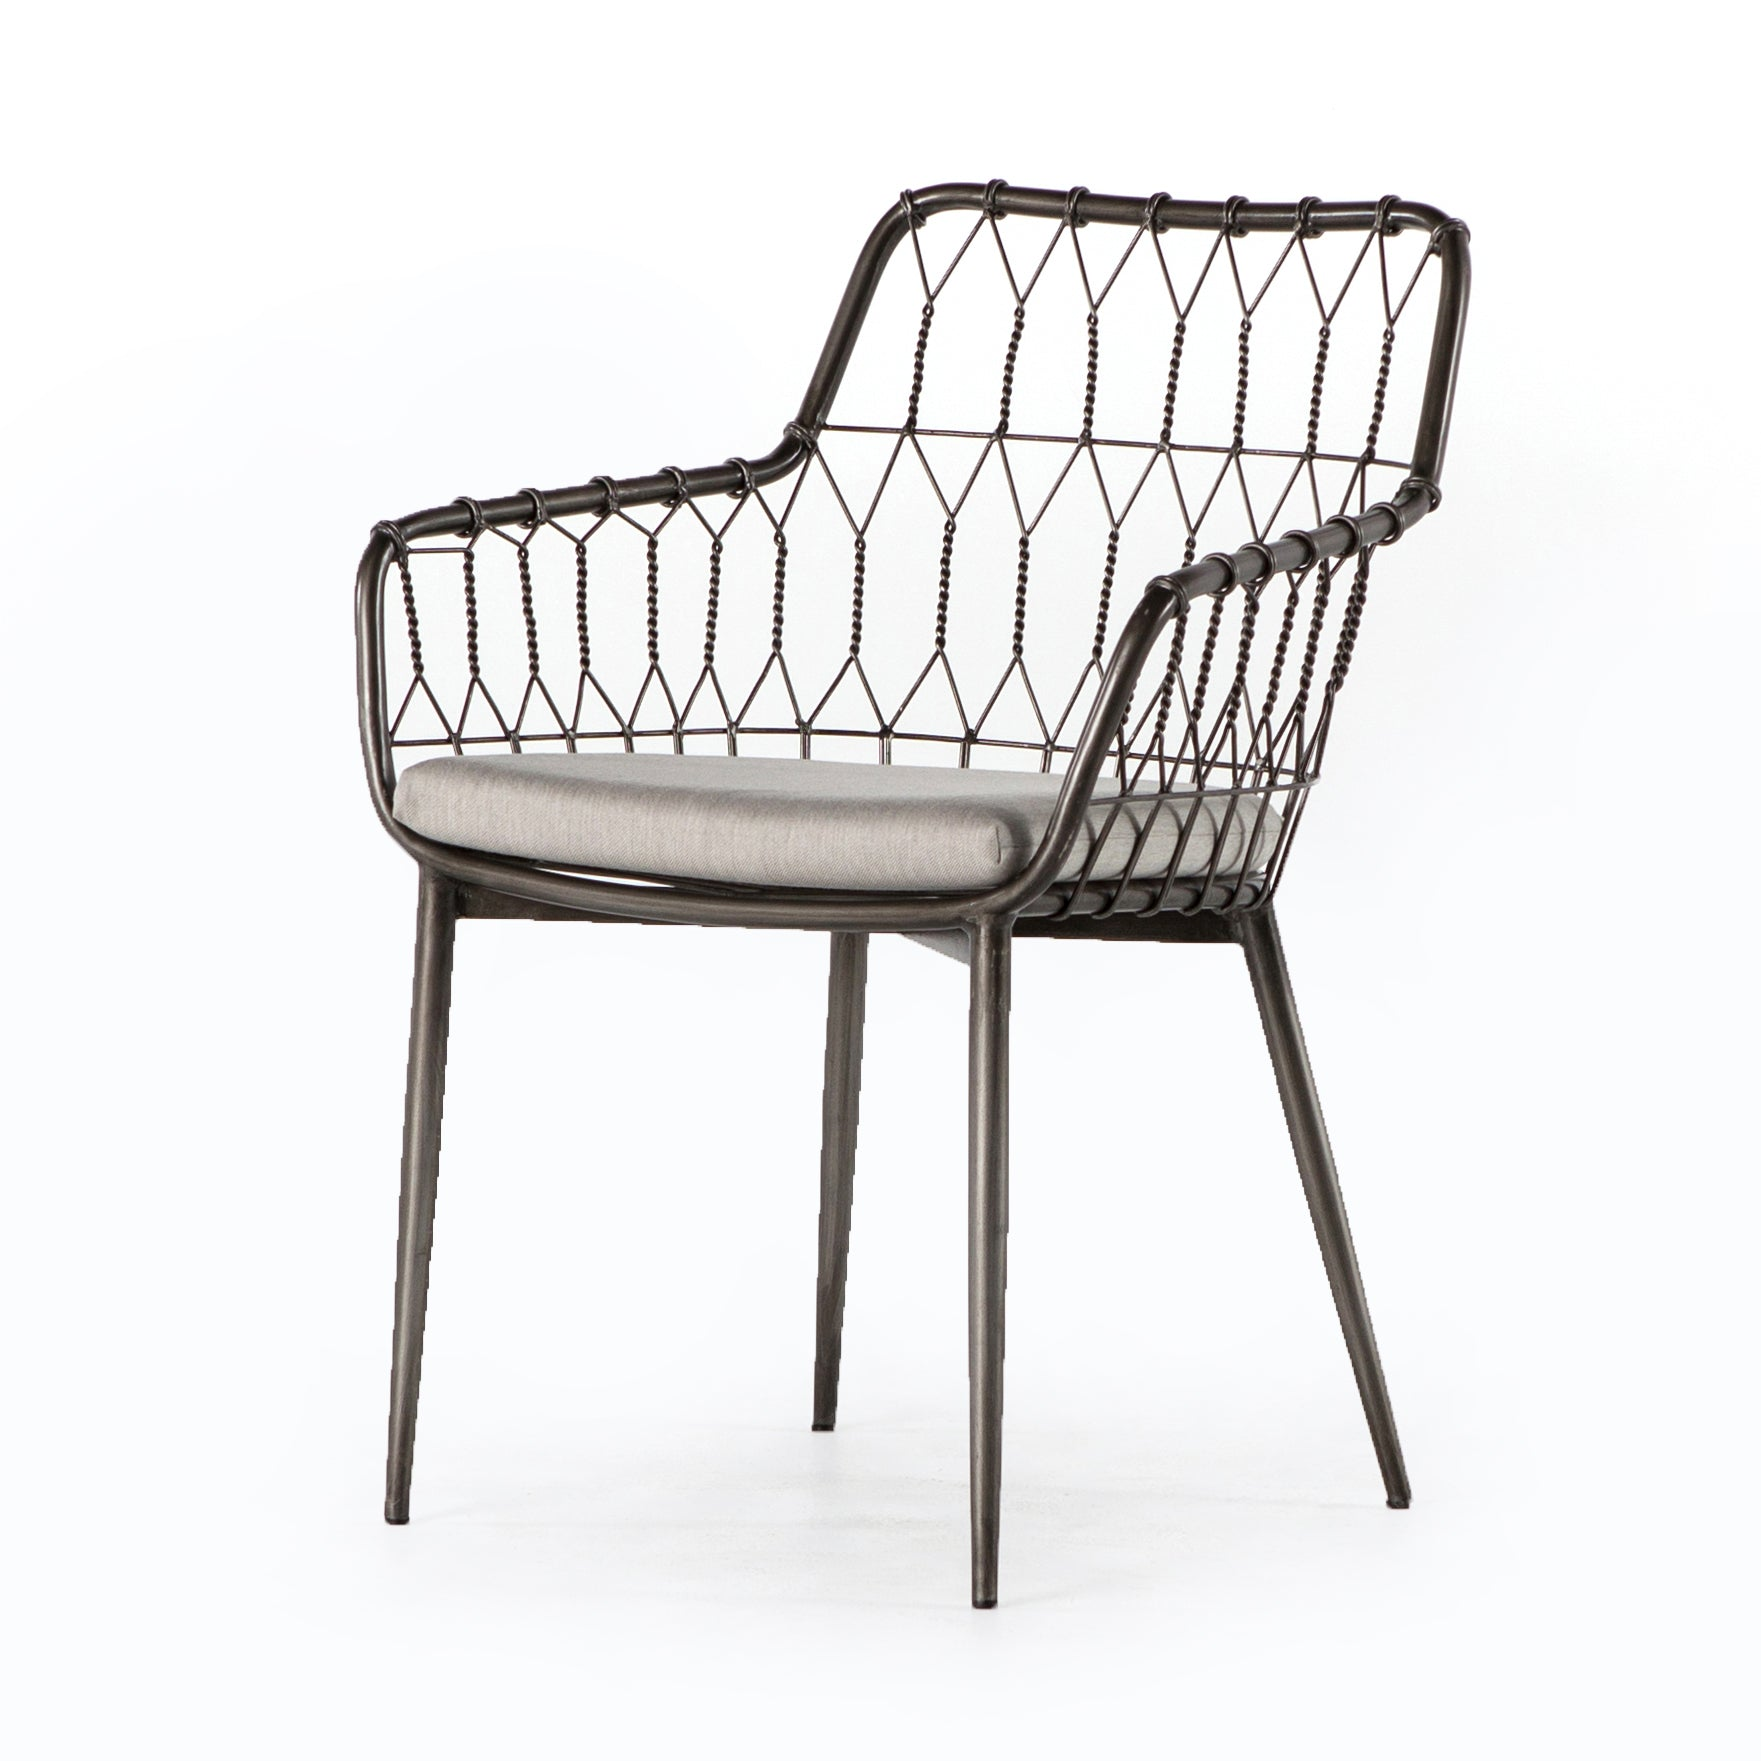 Mantis Metal Outdoor Club Chair